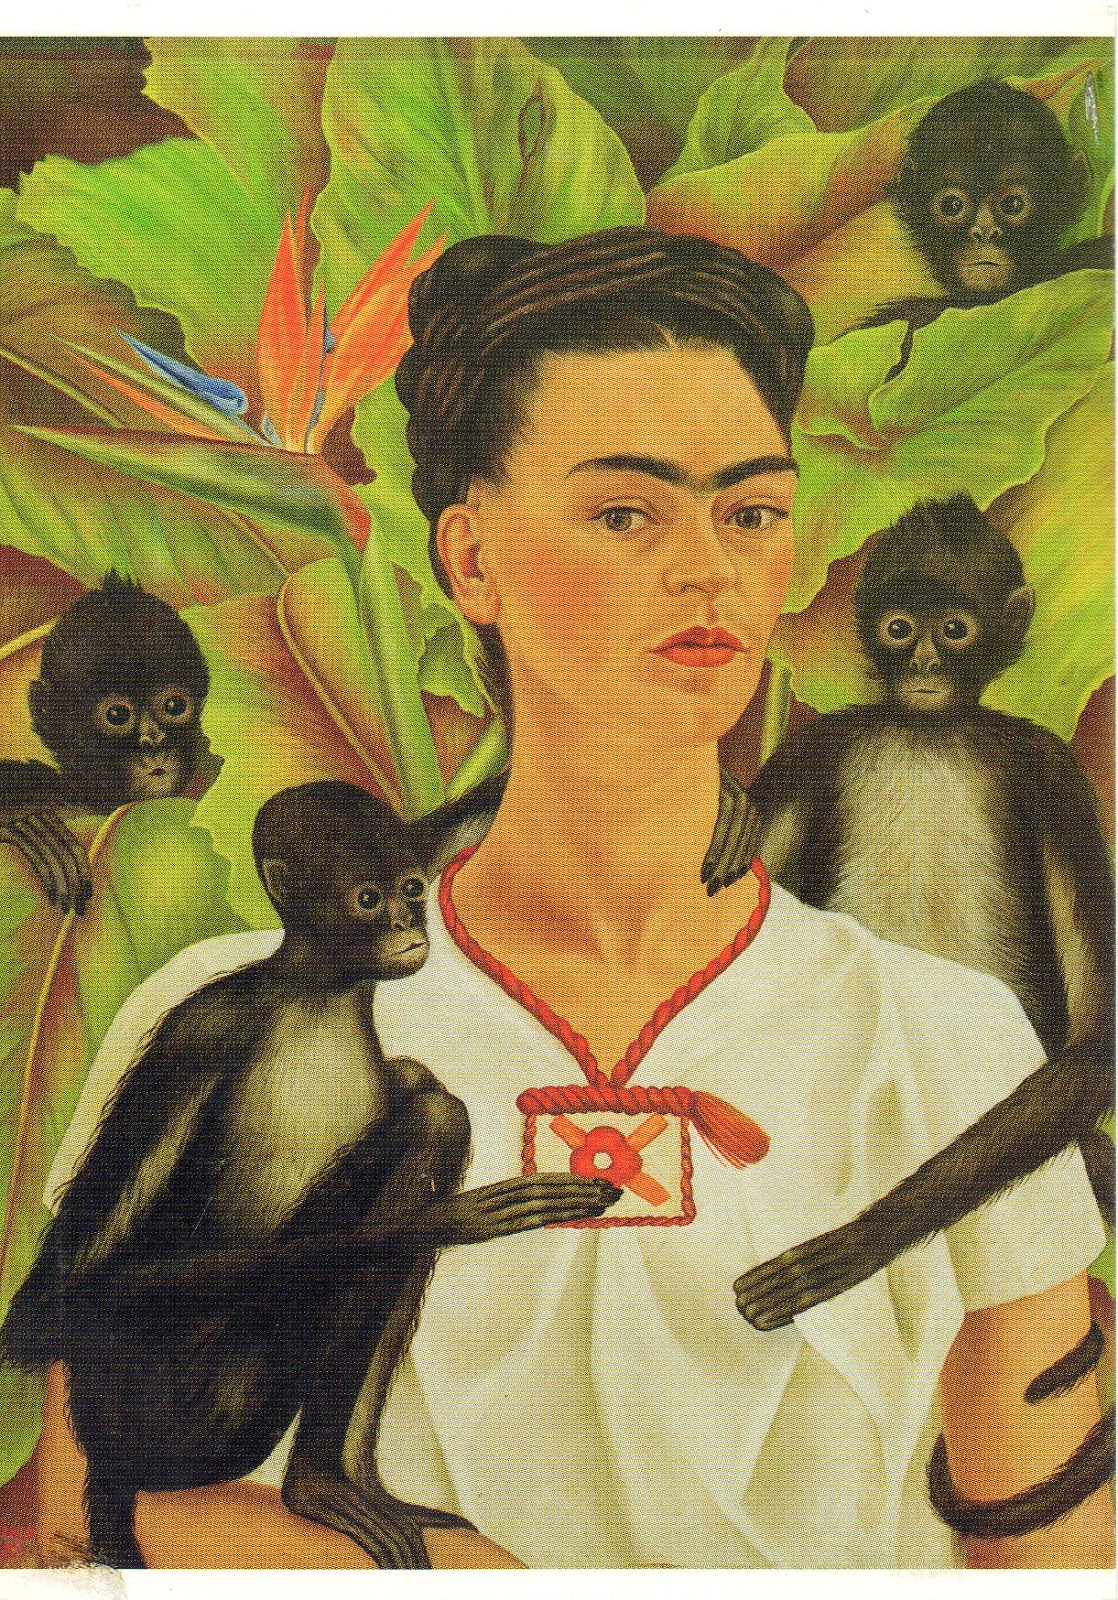 frida kahlo feminist essay This essay aims to argue that kahlo served as an integral character in revolutionizing the feminist movement within art frida kahlo essay frida kahlo in a.